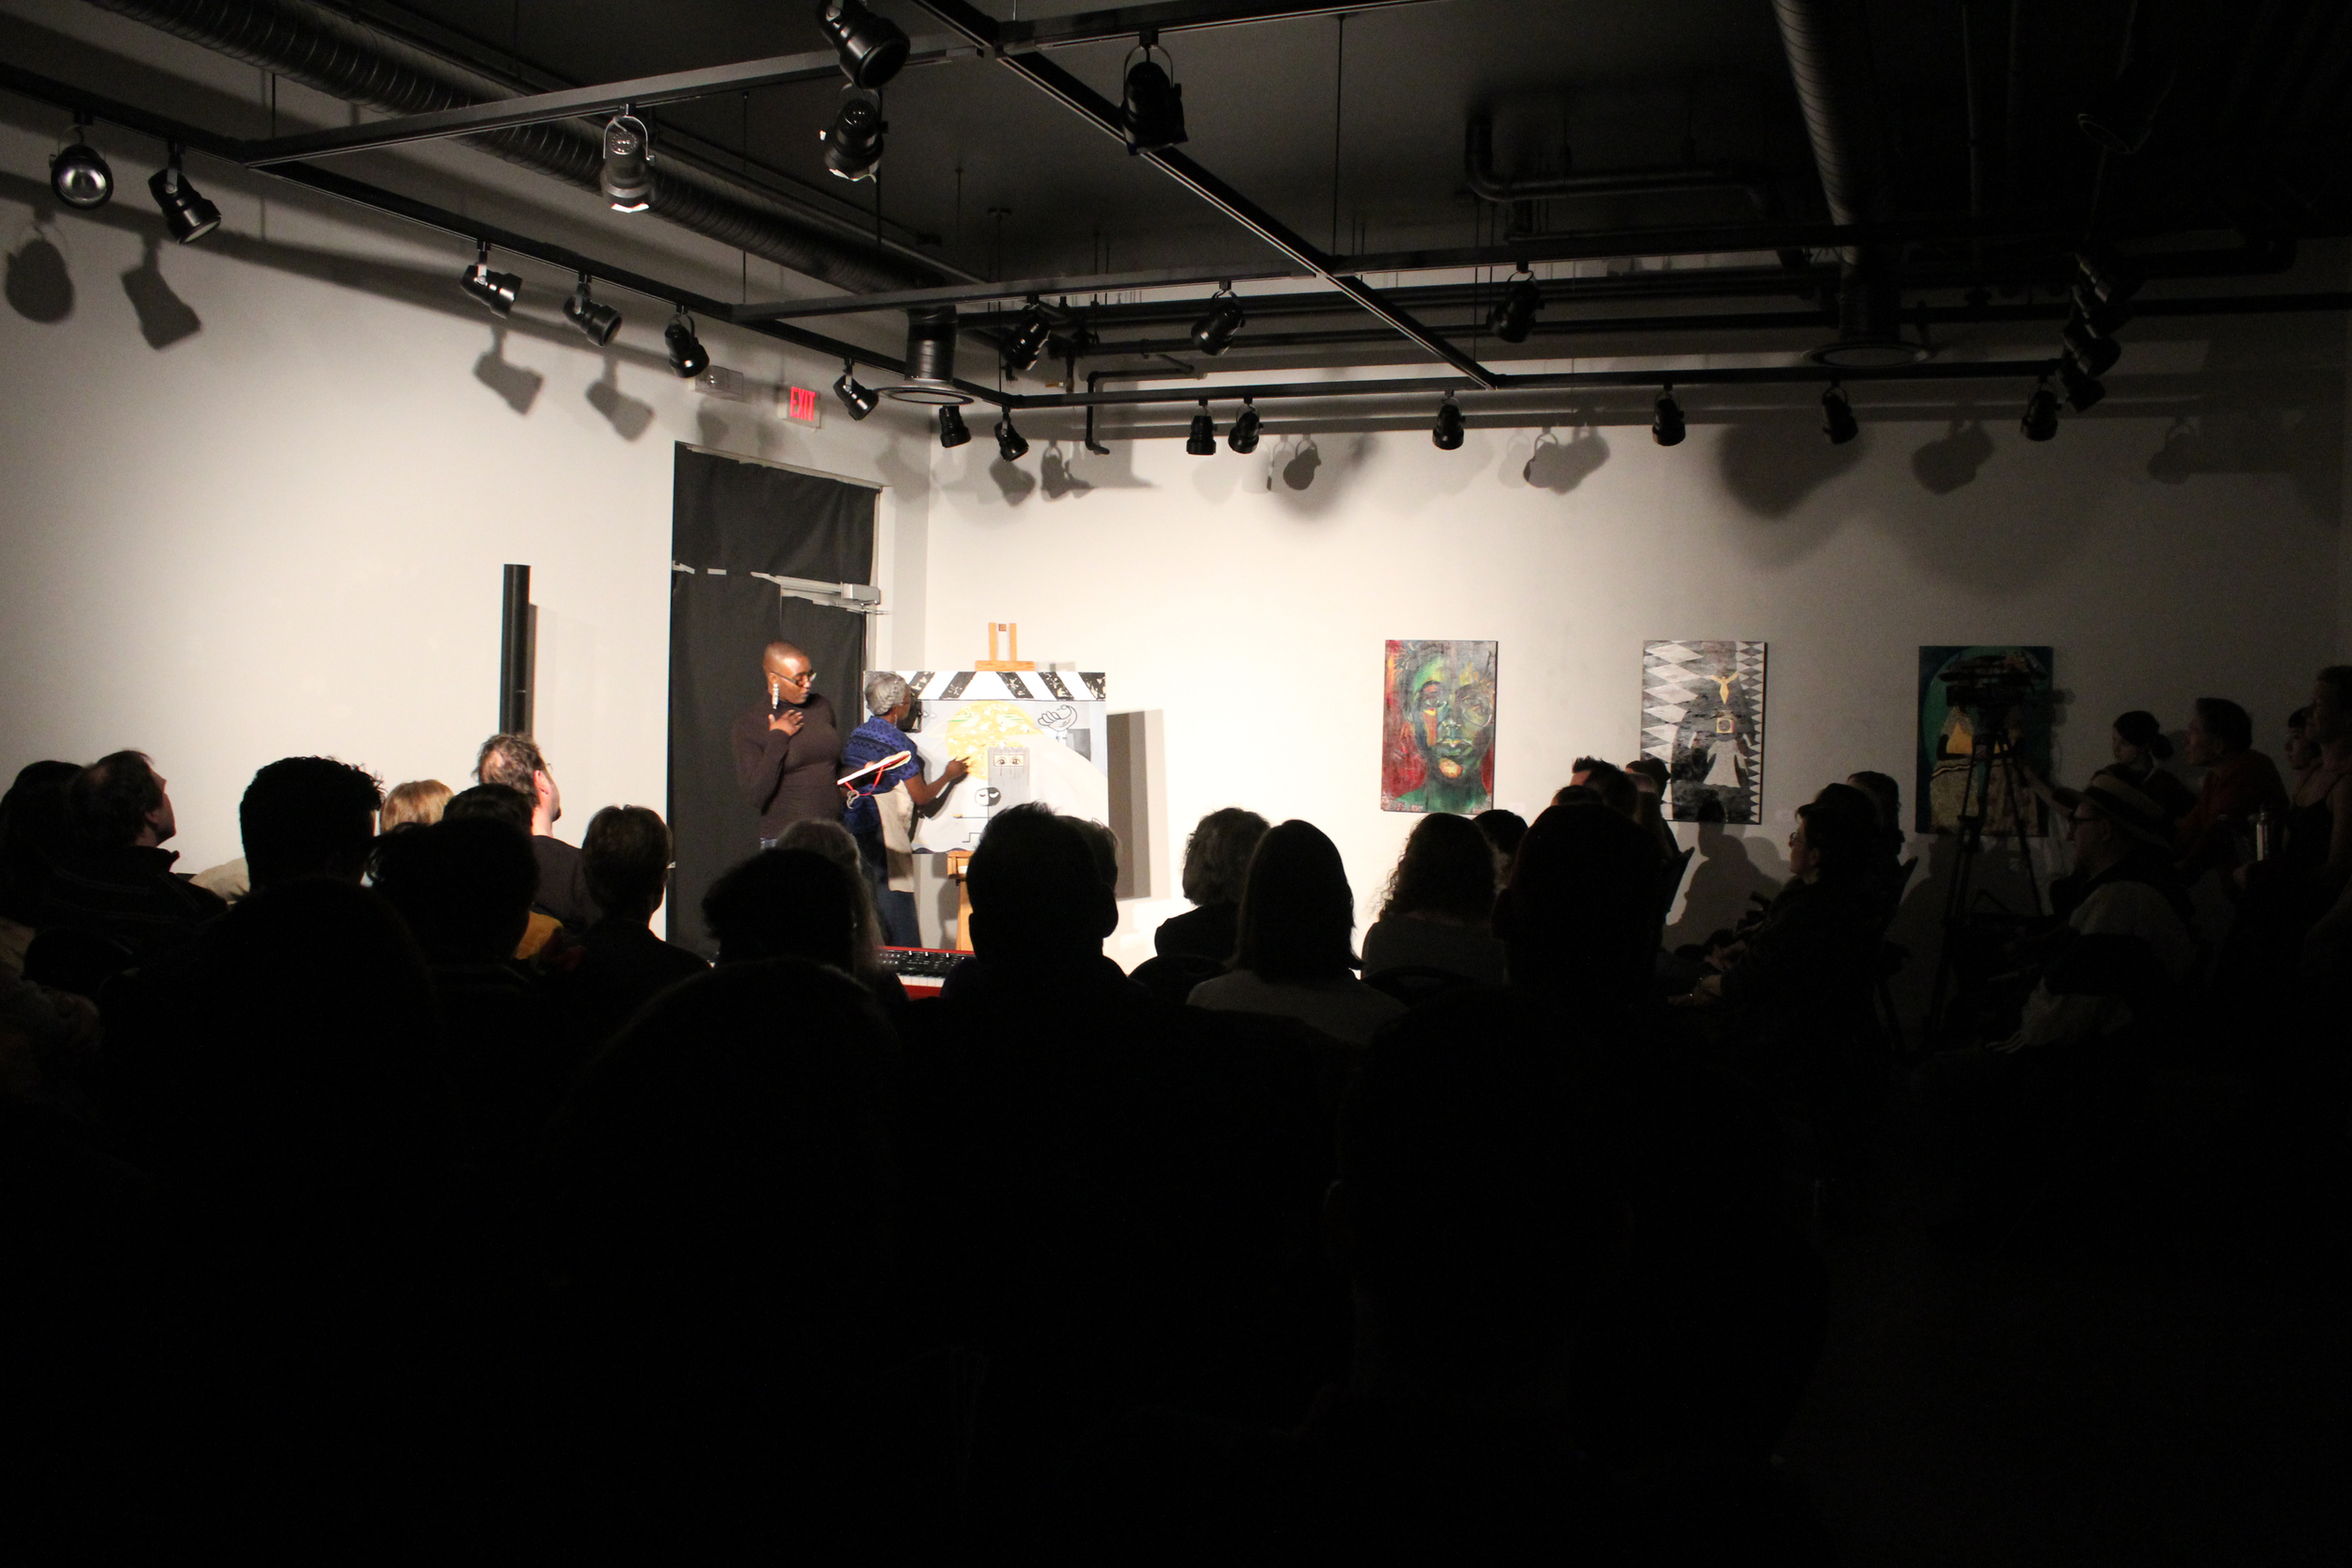 A packed house at the Nina Haggerty Art Gallery watch as mother-daughter duo Elsa and Shima Robinson perform a collaborative piece.